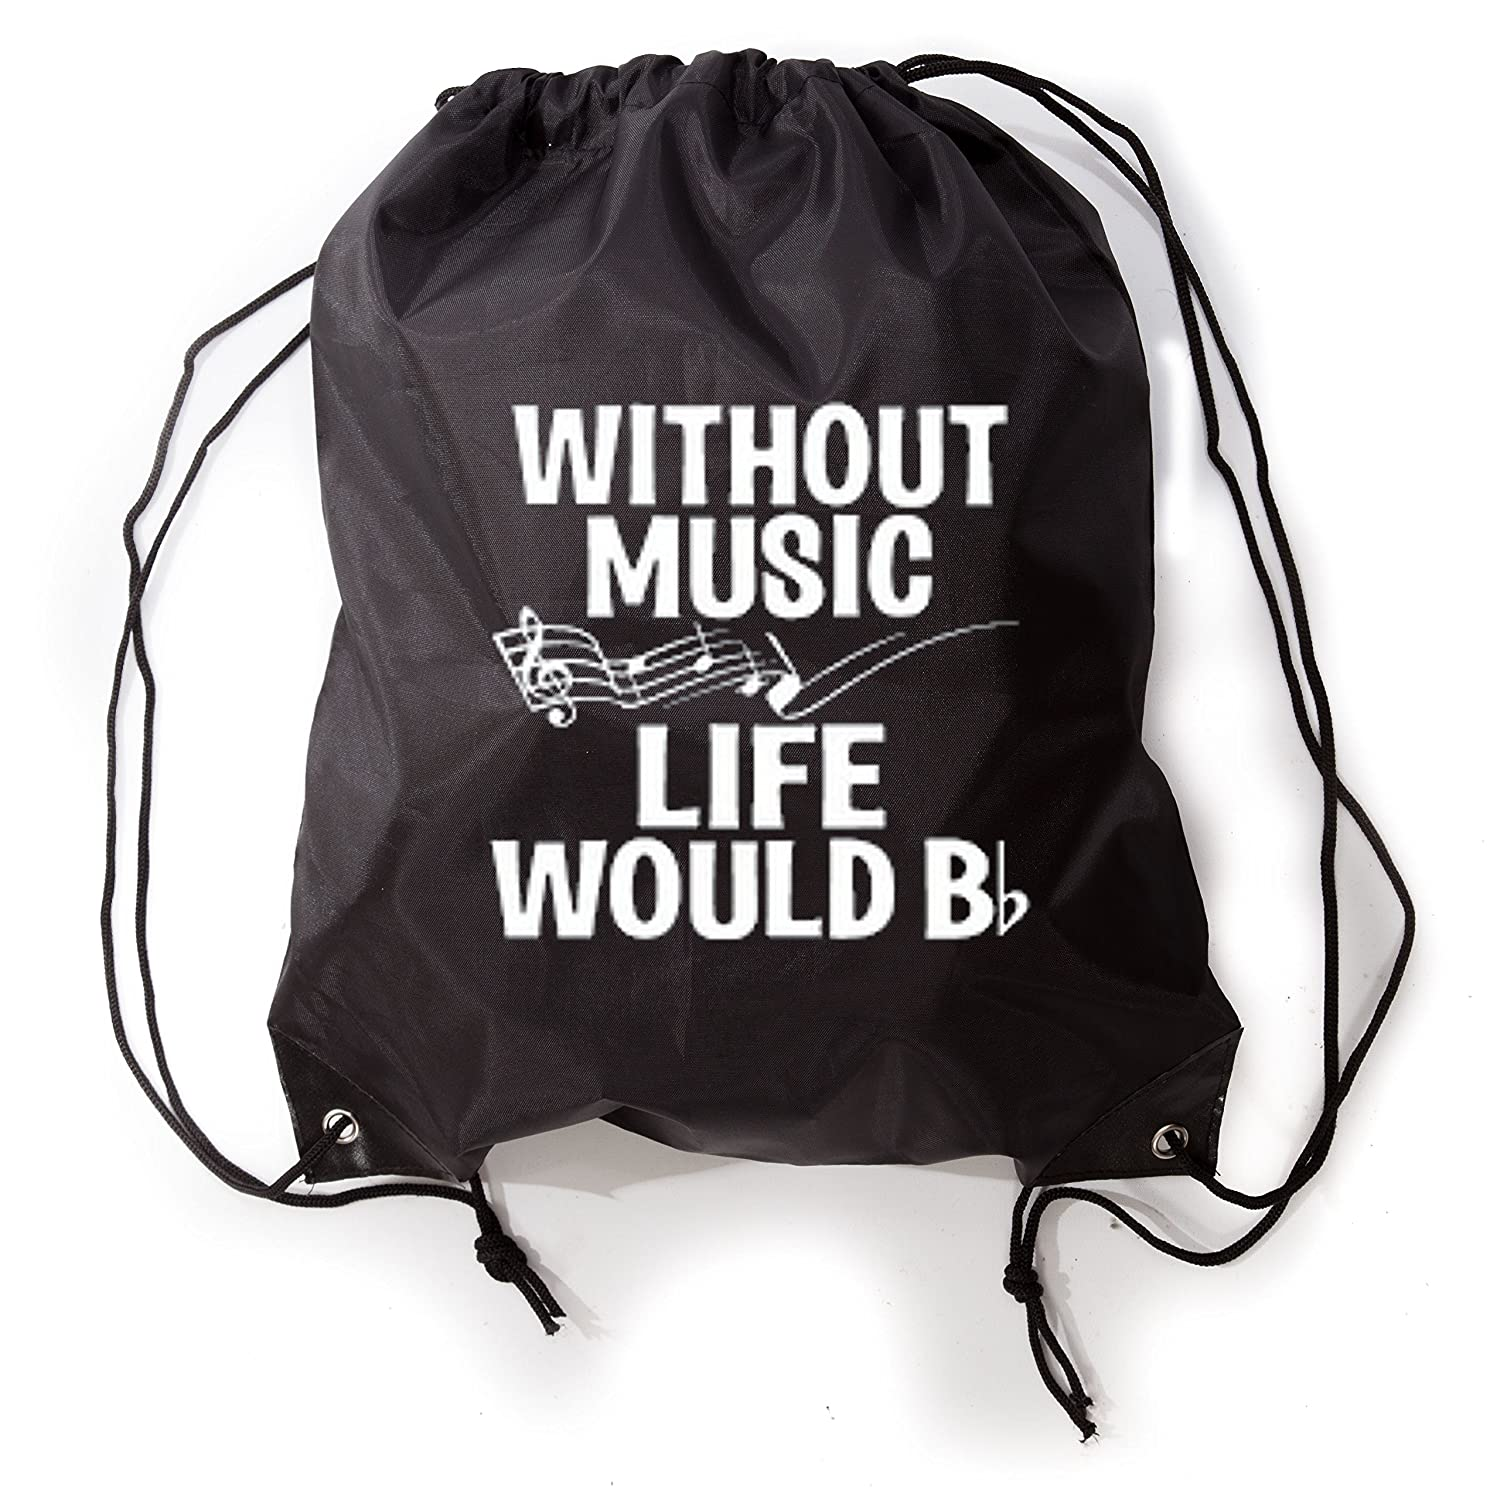 Without Music Life Would BフラットFunny Music Lovers巾着ジムバッグスニーカーバッグ B017J28GWK